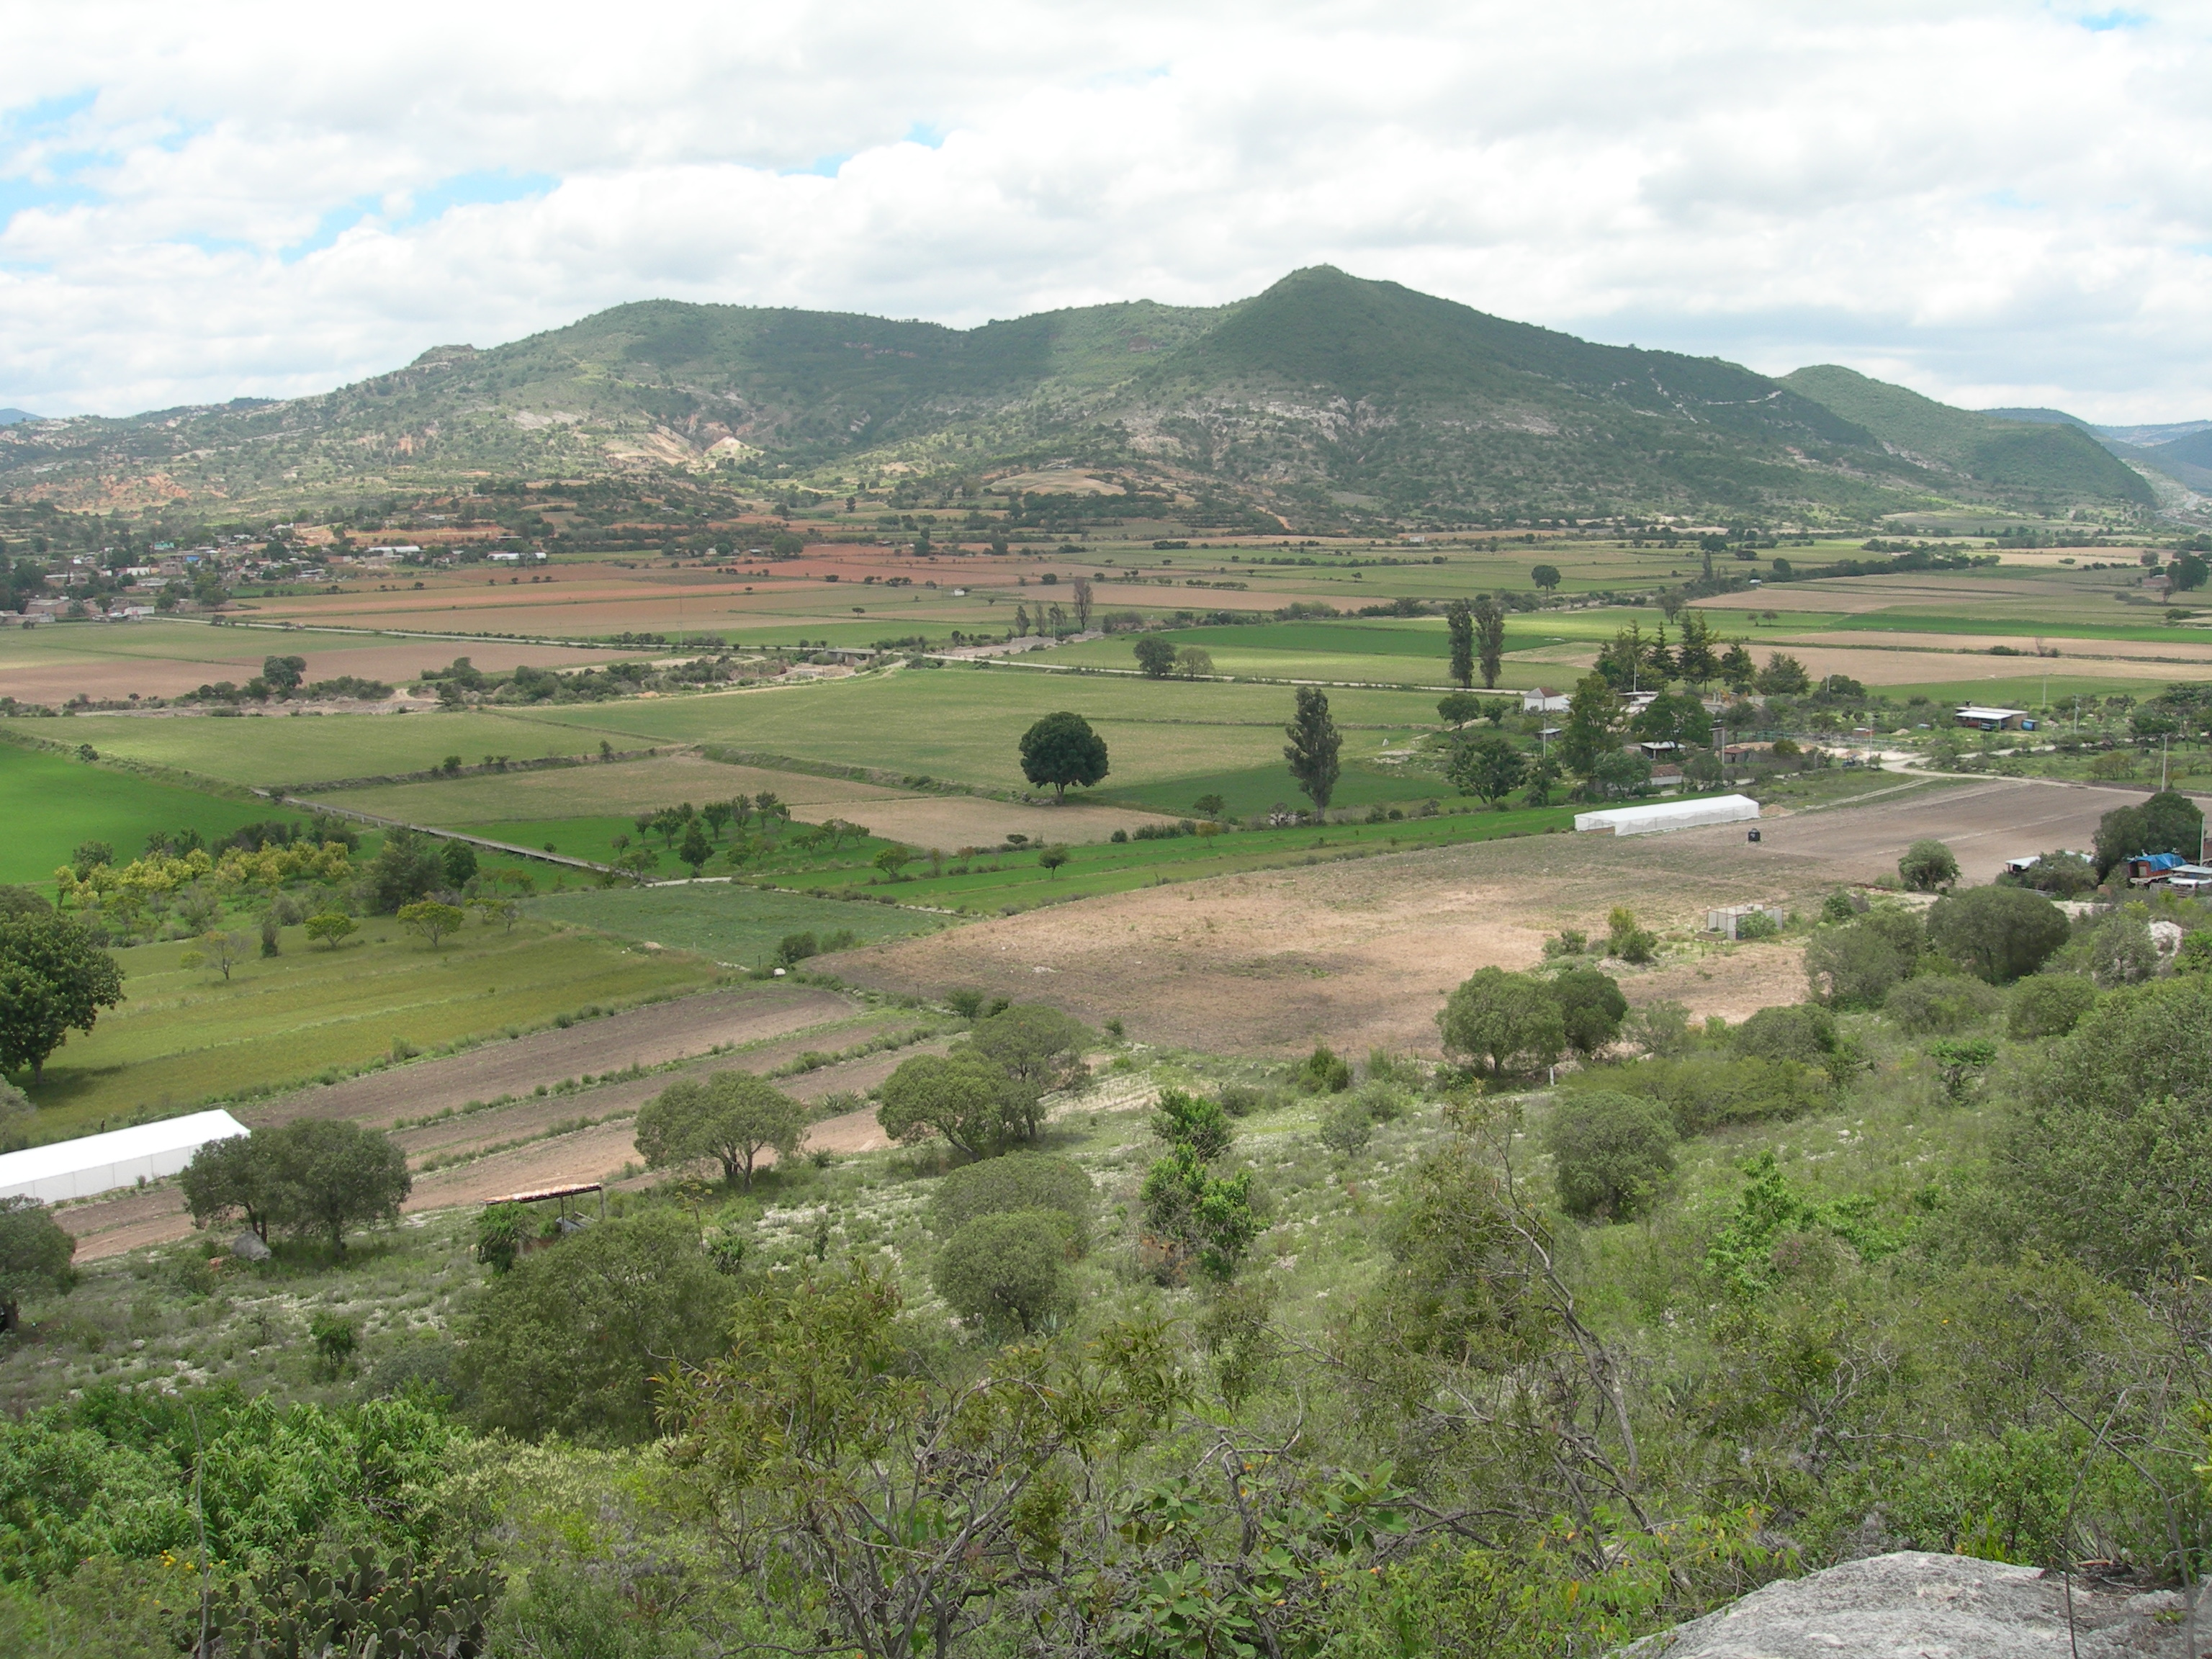 FIGURE 13. The hill of Yucuñudahui, viewed from the south. June 2007. Photo by Byron Hamann.